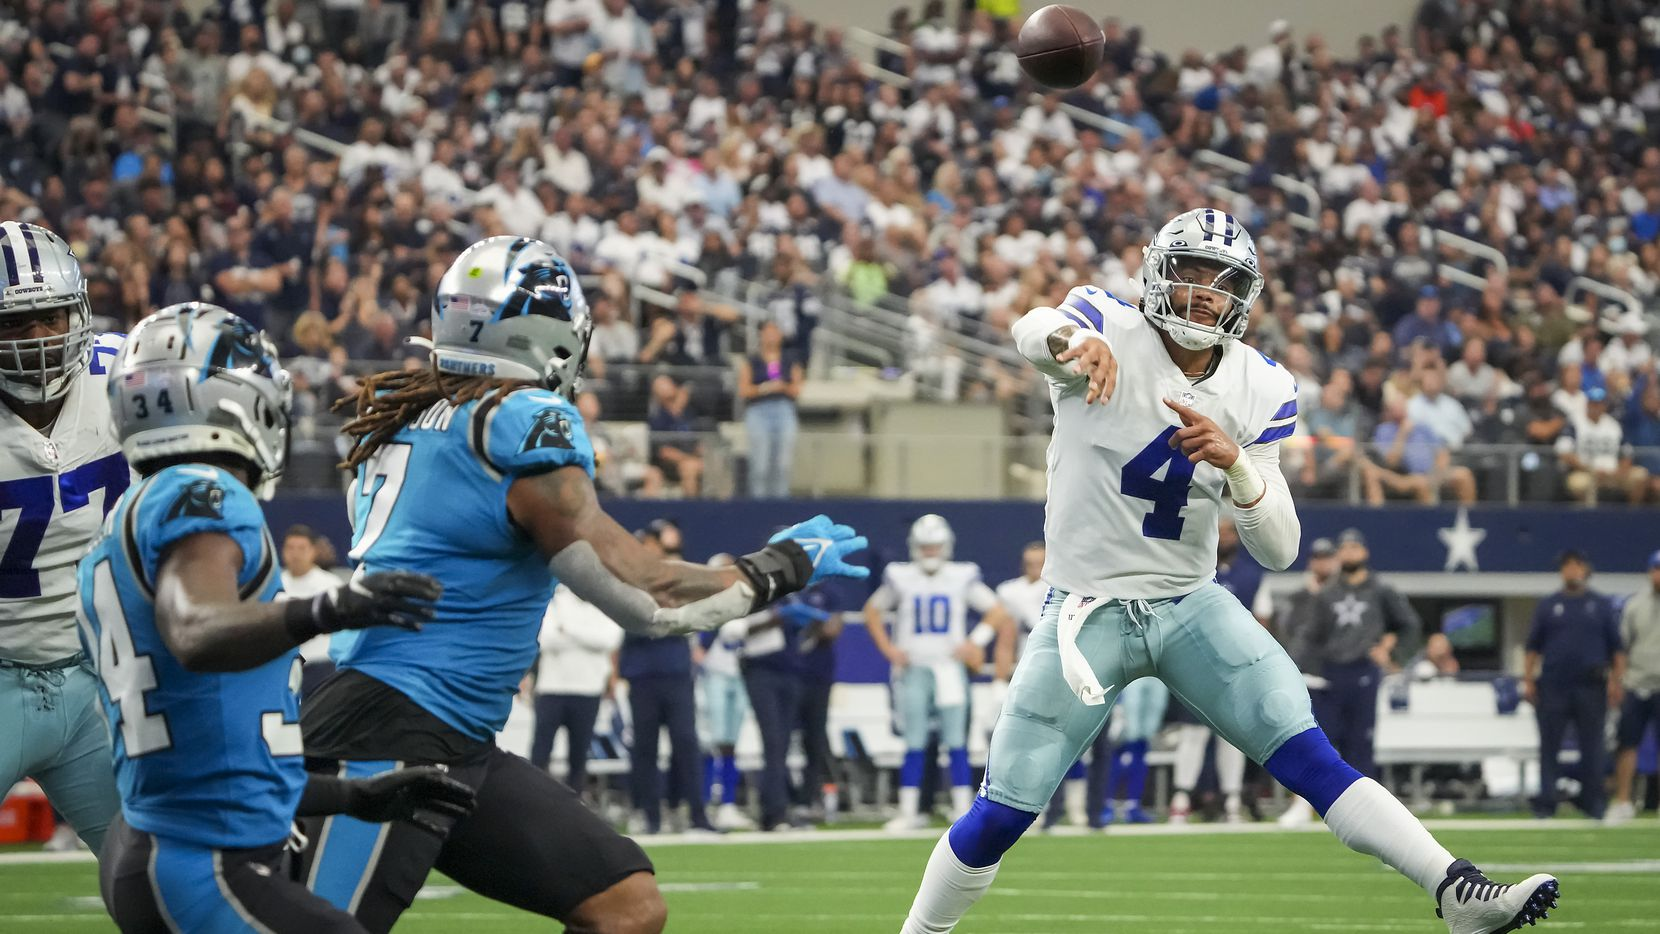 Dallas Cowboys quarterback Dak Prescott (4) makes a throw on the run during the first half of an NFL football game against the Carolina Panthers at AT&T Stadium on Sunday, Oct. 3, 2021, in Arlington.